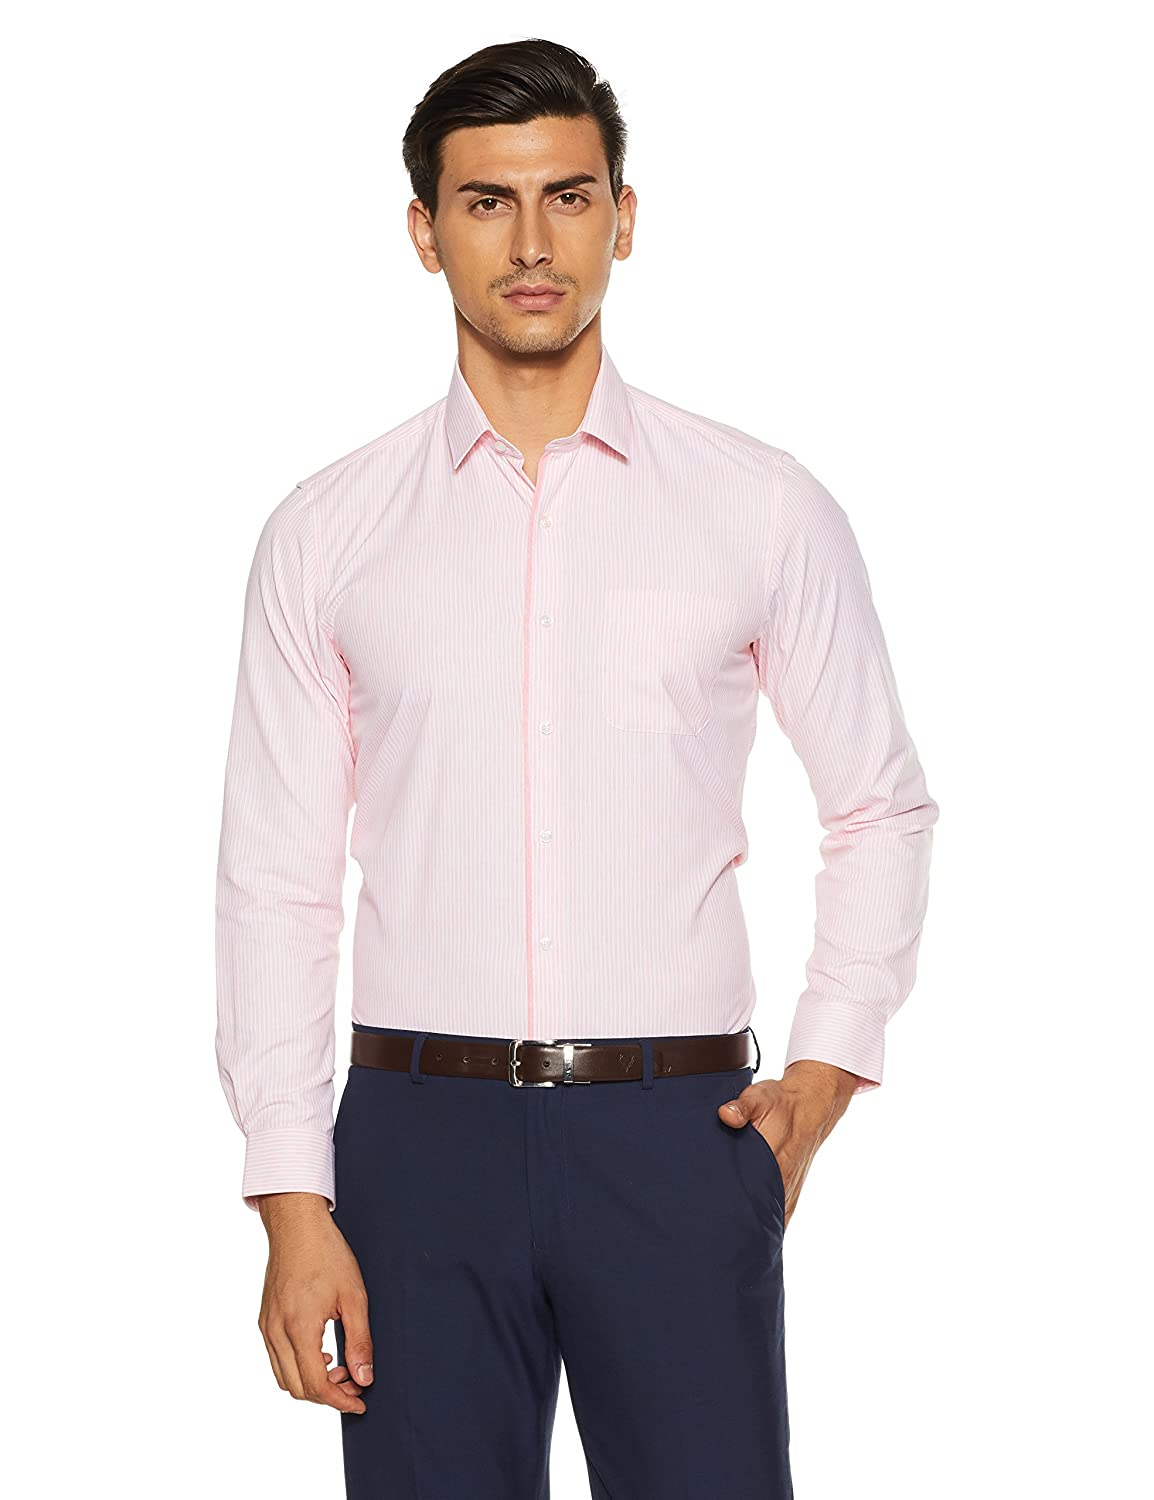 4e8c0eecfb7 Rs. 640 · Buy This Item · Peter England Men s Striped Regular Fit Formal  Shirt